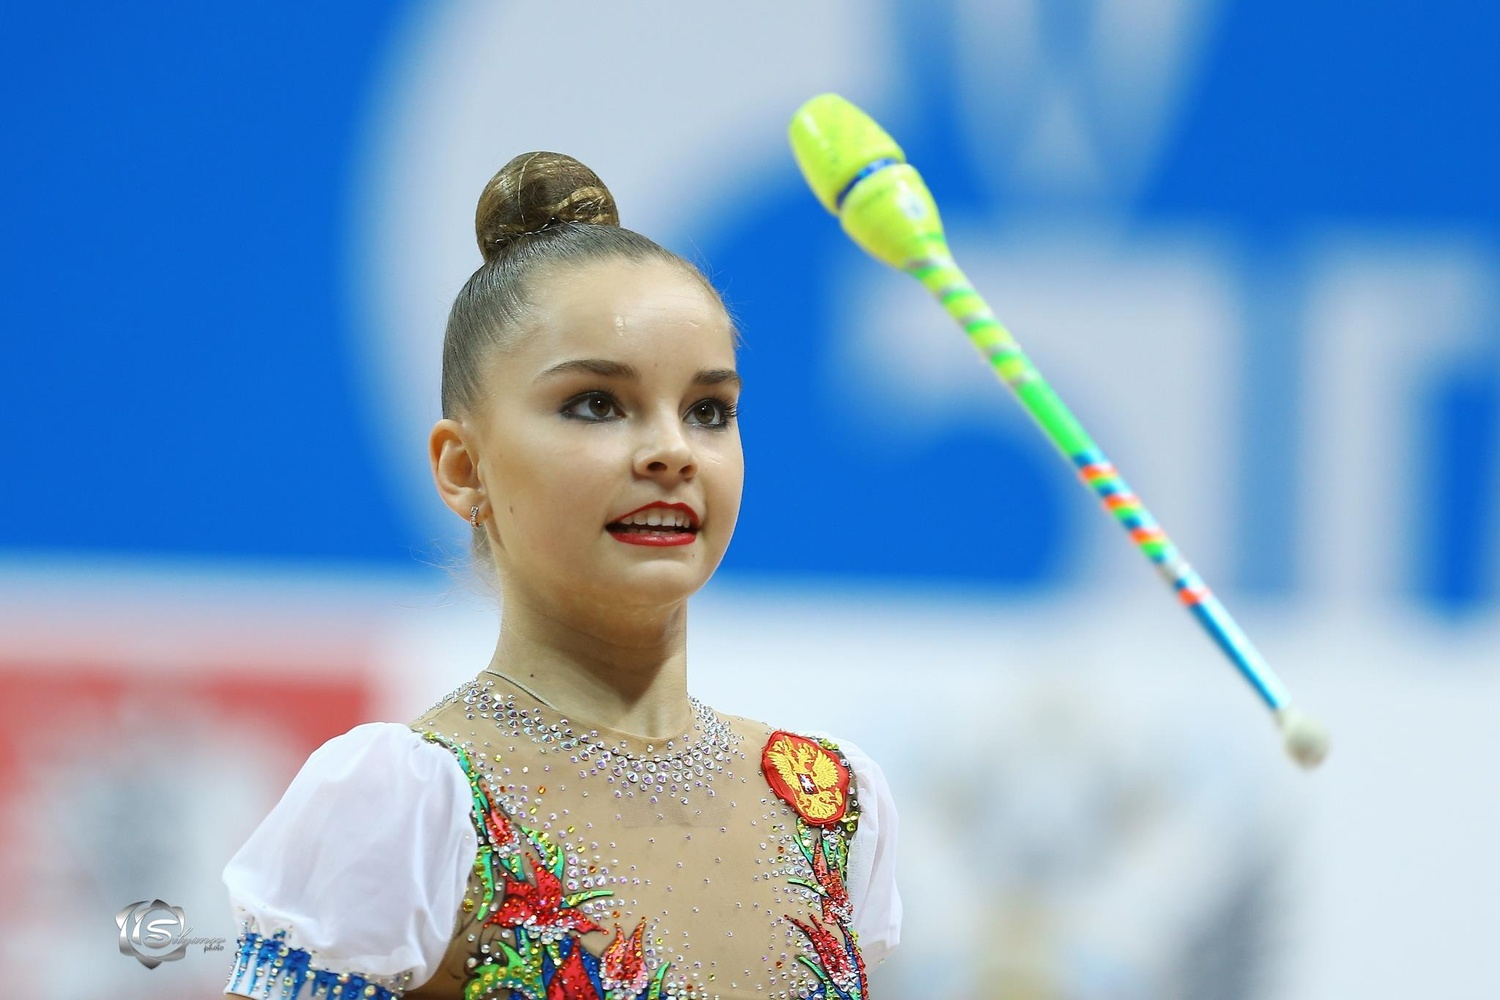 Grand Prix 2016 (Moscow)